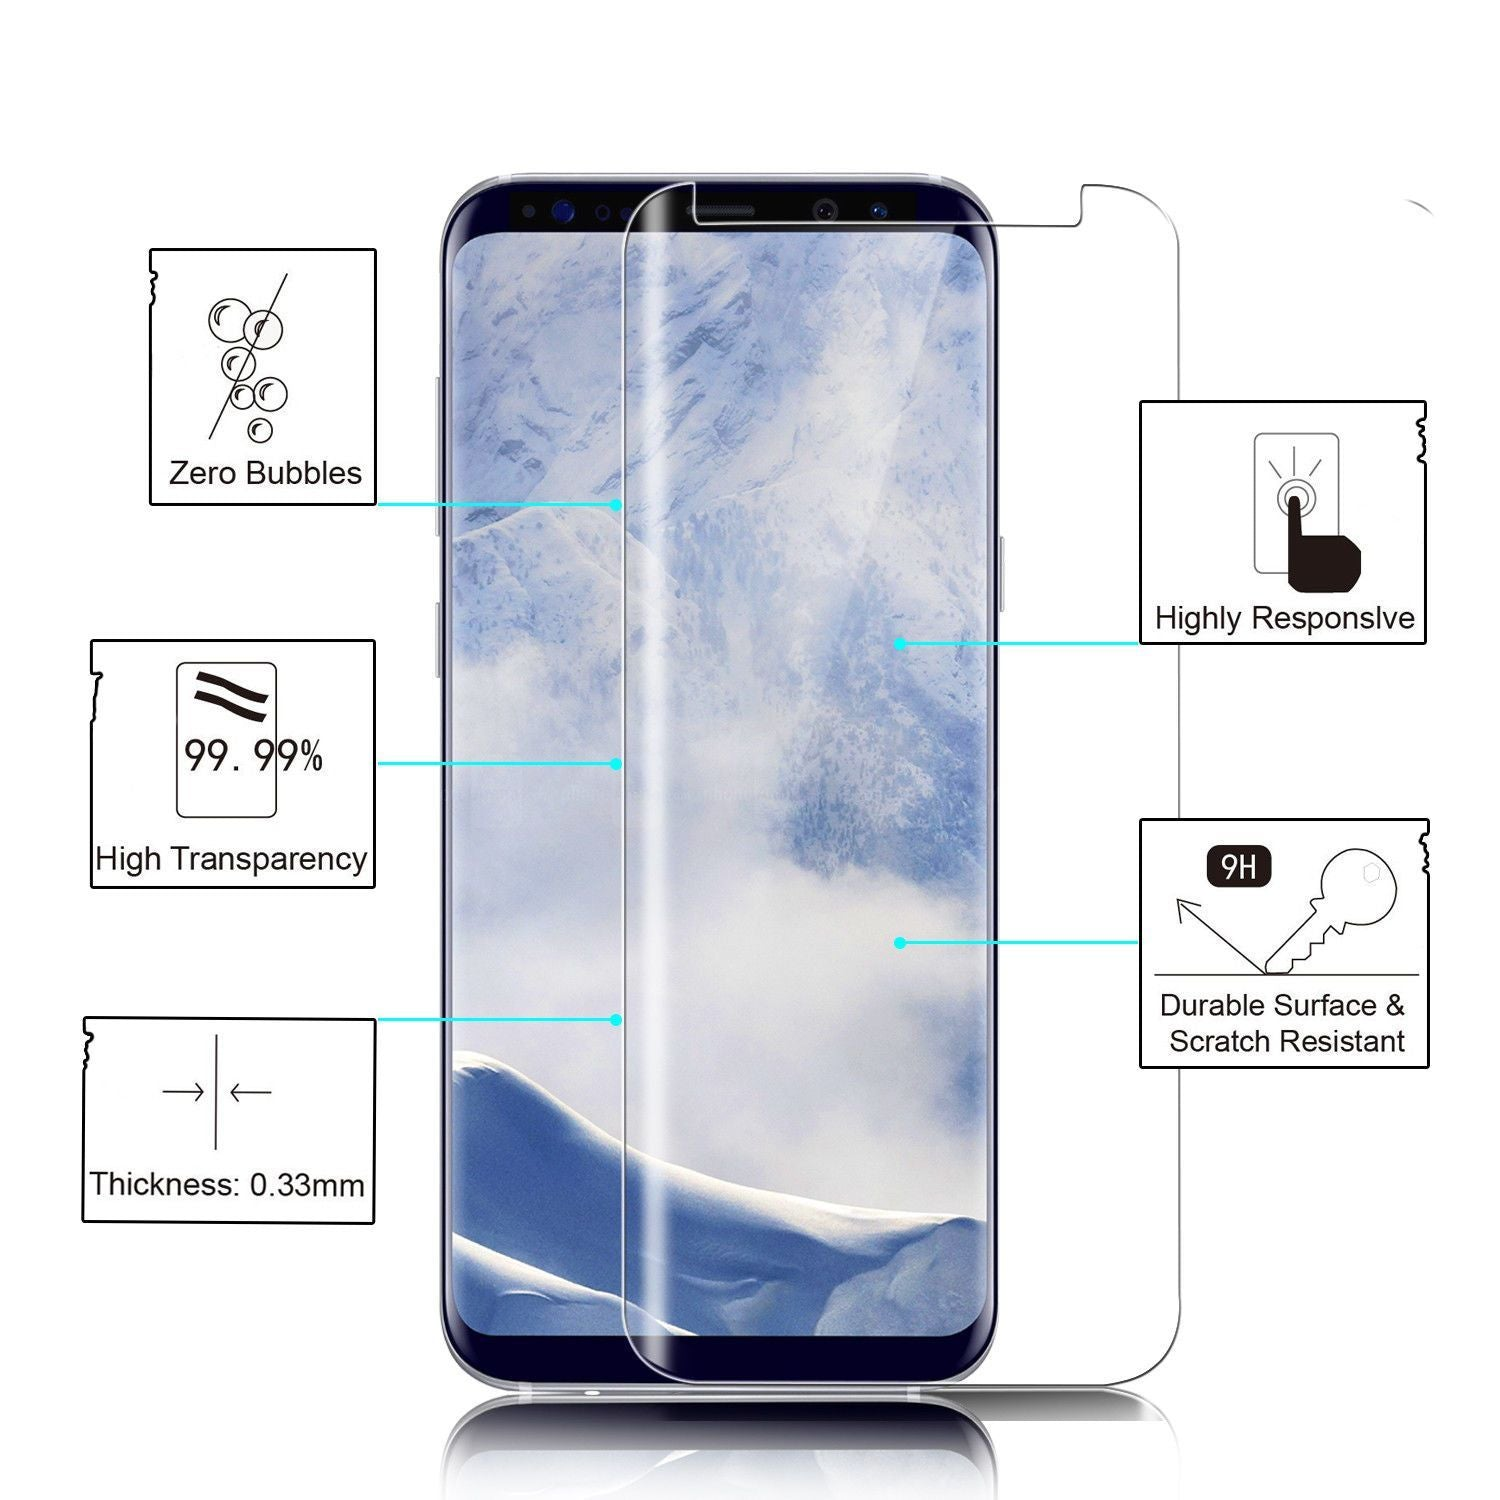 Buy 1 Get 1 FREE: Galaxy S9Plus Lens Case Plus Mirror Shine Cover